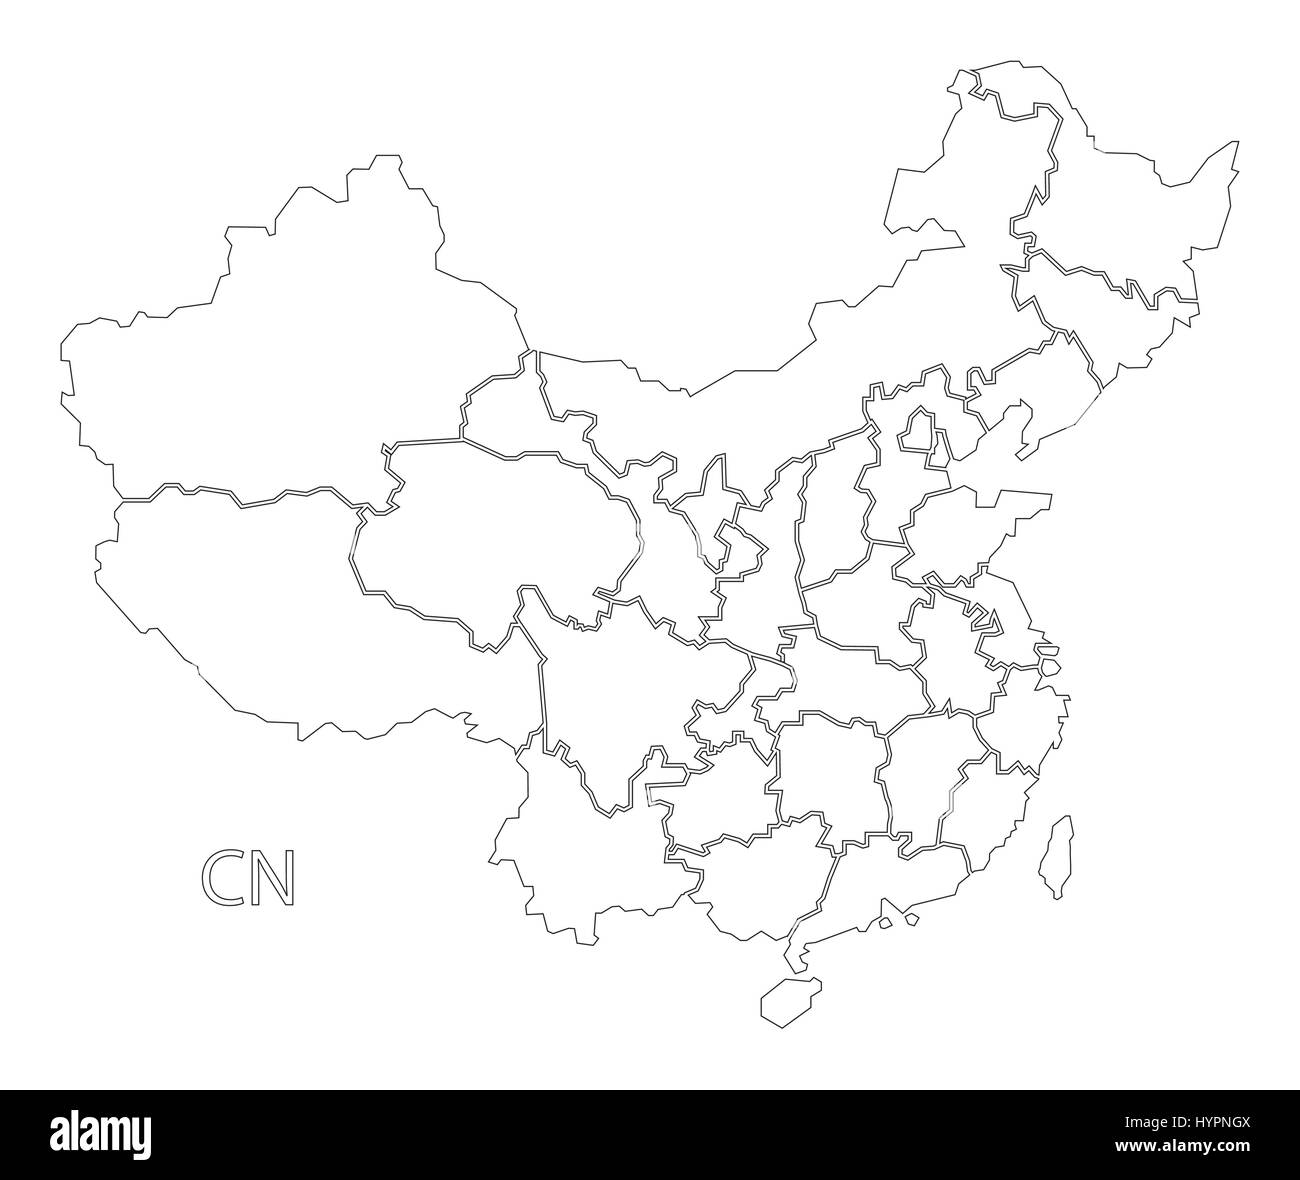 Blank Map Of China Provinces.Map China Provinces Stock Photos Map China Provinces Stock Images